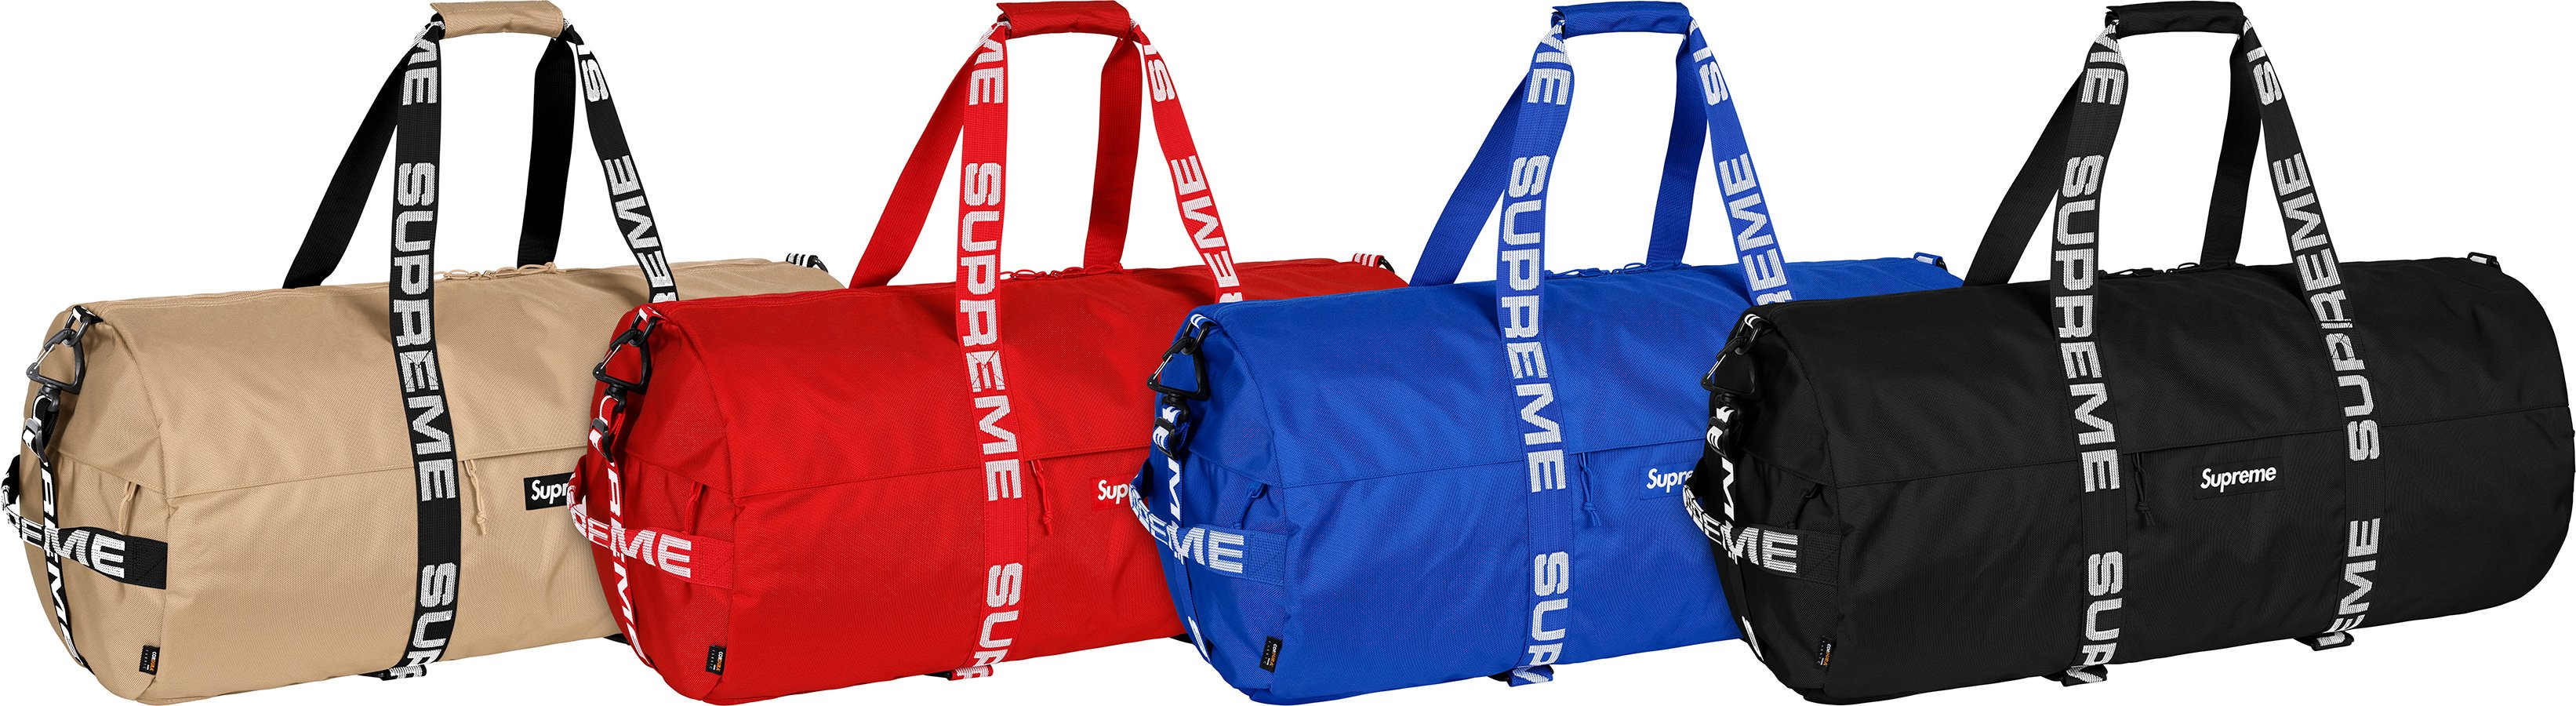 supreme-18ss-spring-summer-large-duffle-bag